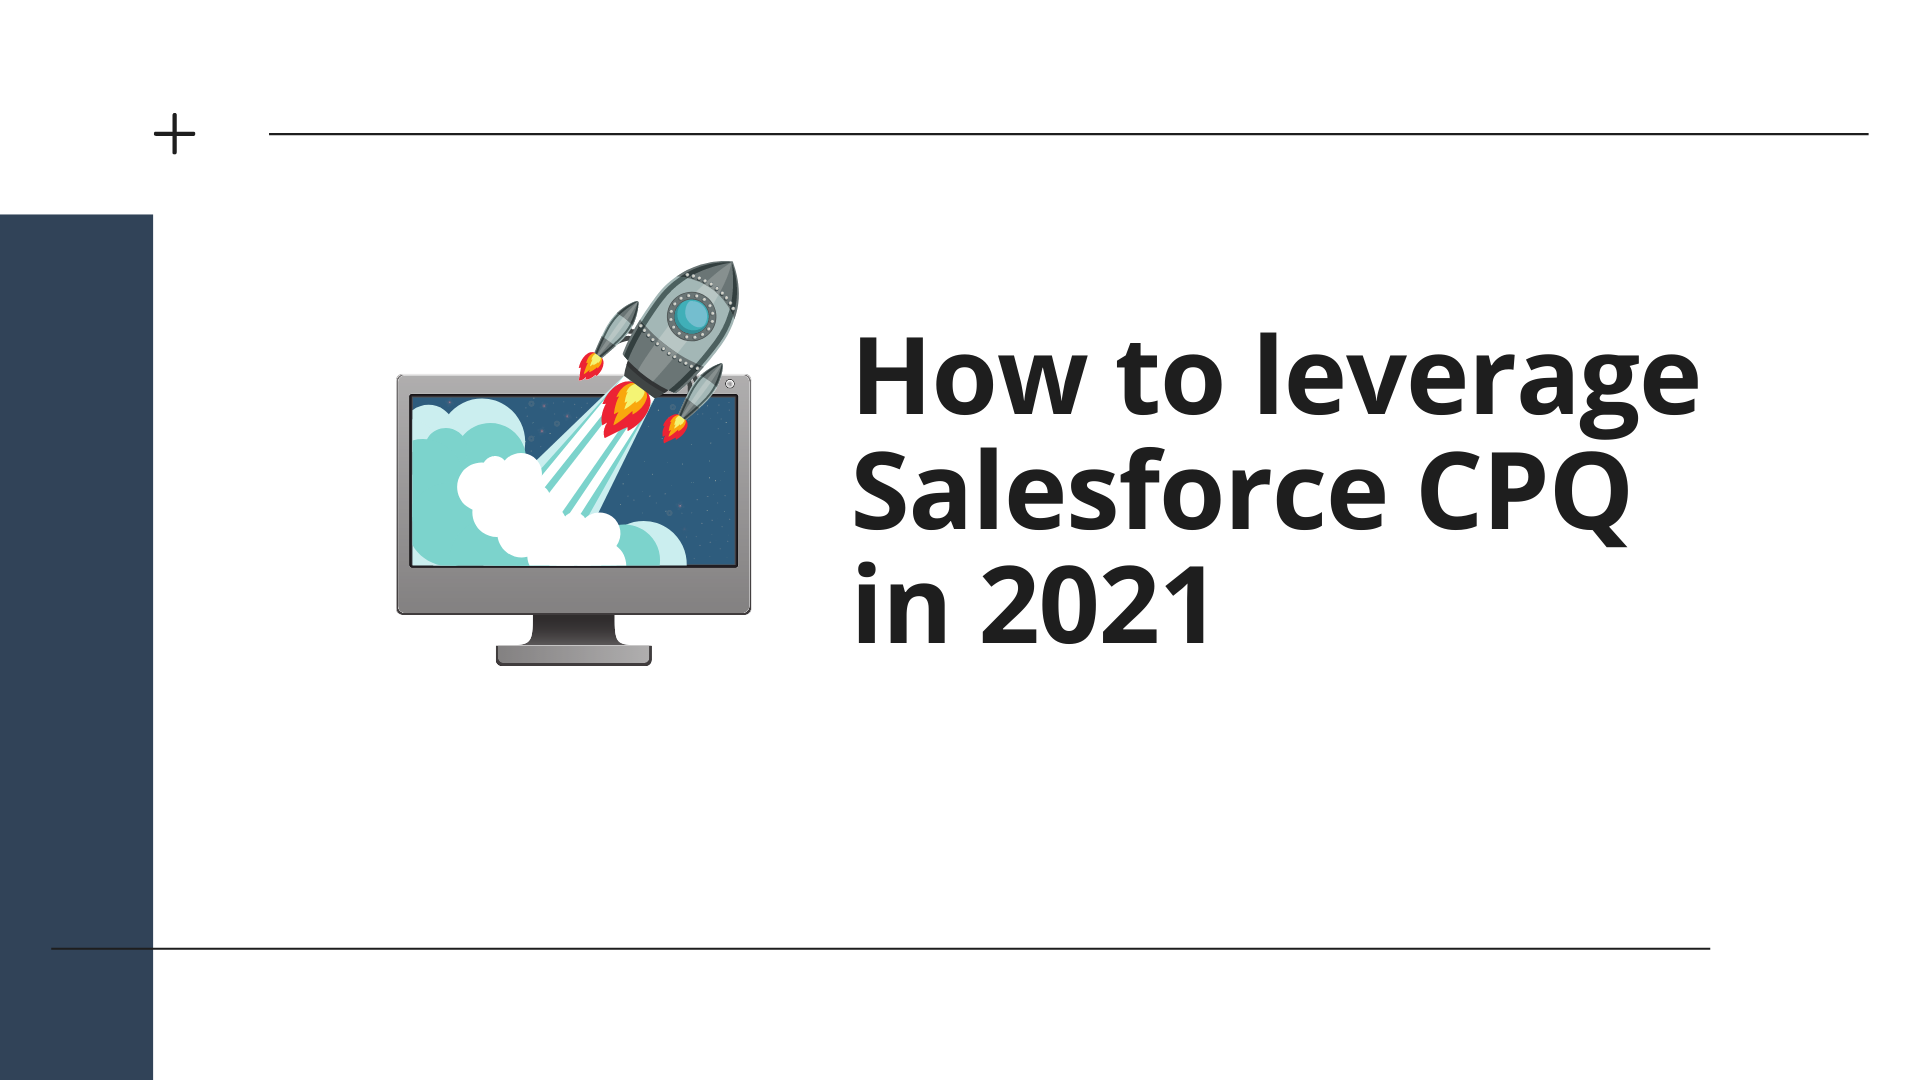 How to leverage Salesforce CPQ in 2021